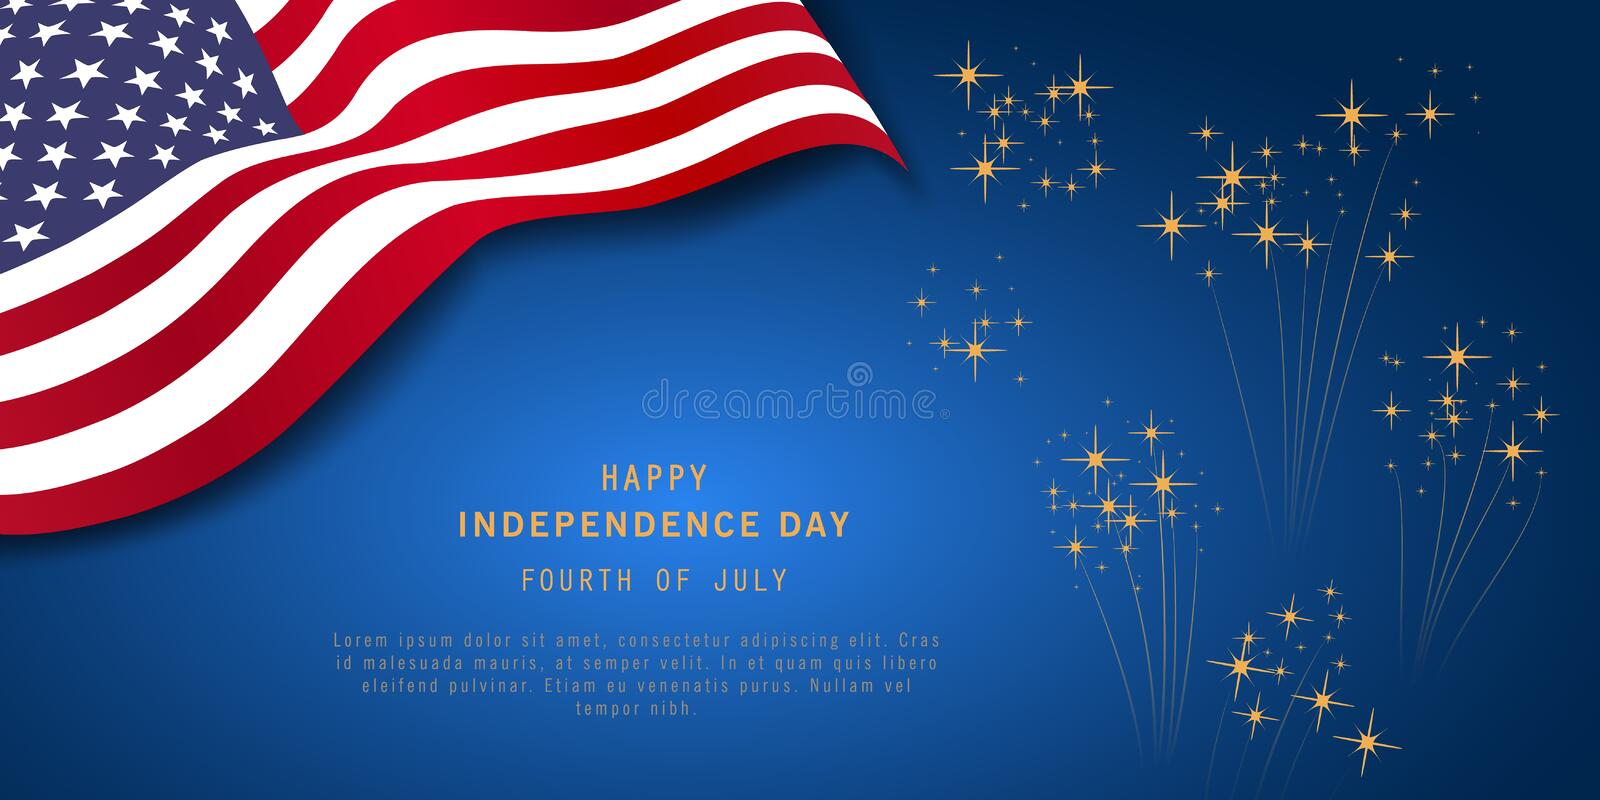 4th of July or Independence Day Banner on navy blue background with fireworks and USA flag. Memorial day. President election. Waving flag design for poster royalty free illustration